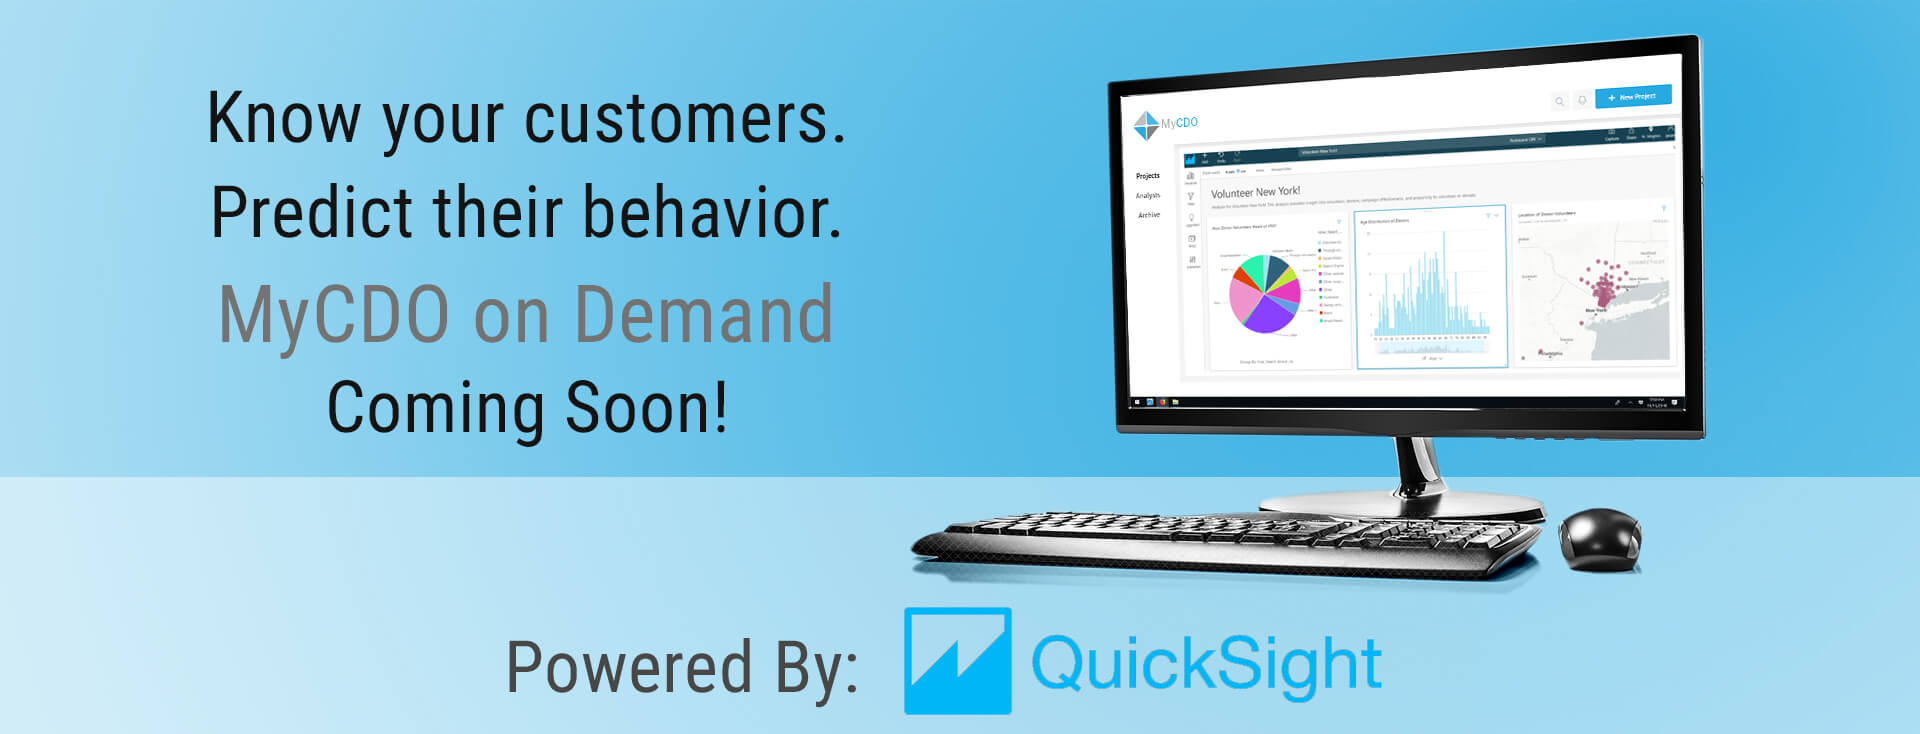 """a monitor and keyboard with a text in the bottom of """"powered by quicksight"""""""